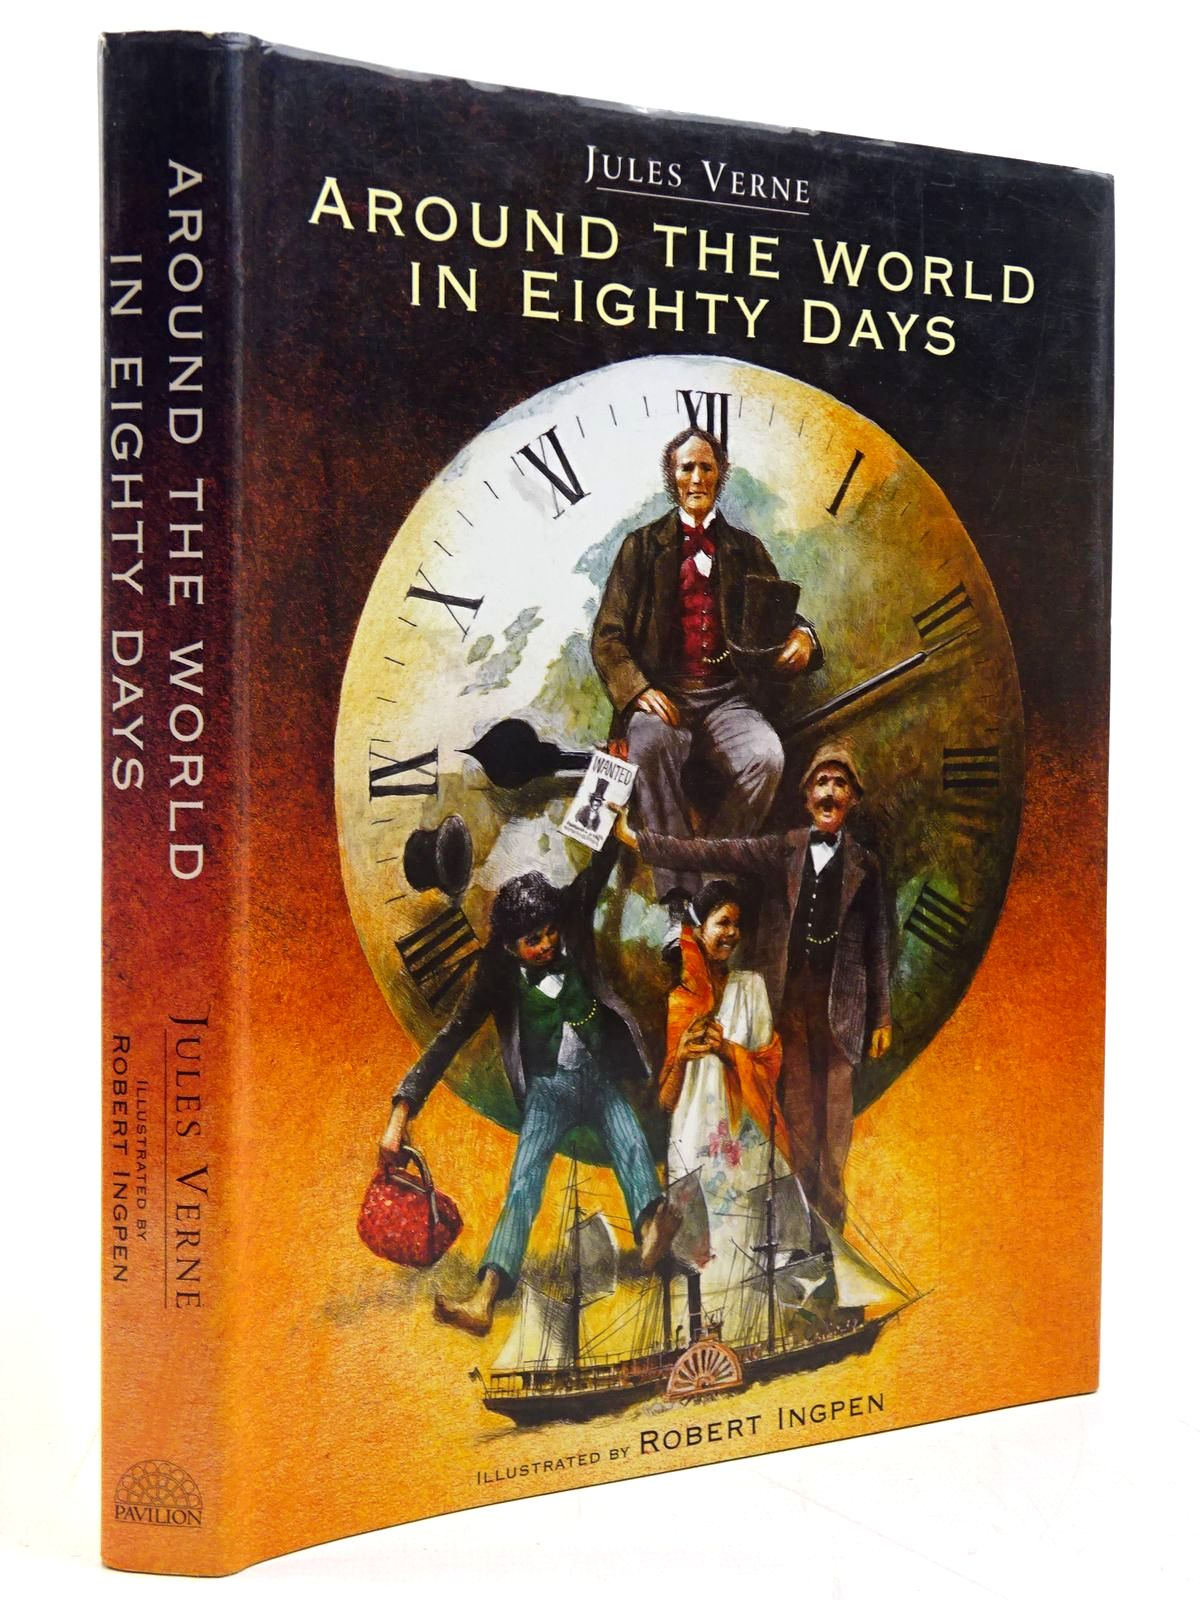 Photo of AROUND THE WORLD IN EIGHTY DAYS written by Verne, Jules illustrated by Ingpen, Robert published by Pavilion (STOCK CODE: 2130835)  for sale by Stella & Rose's Books